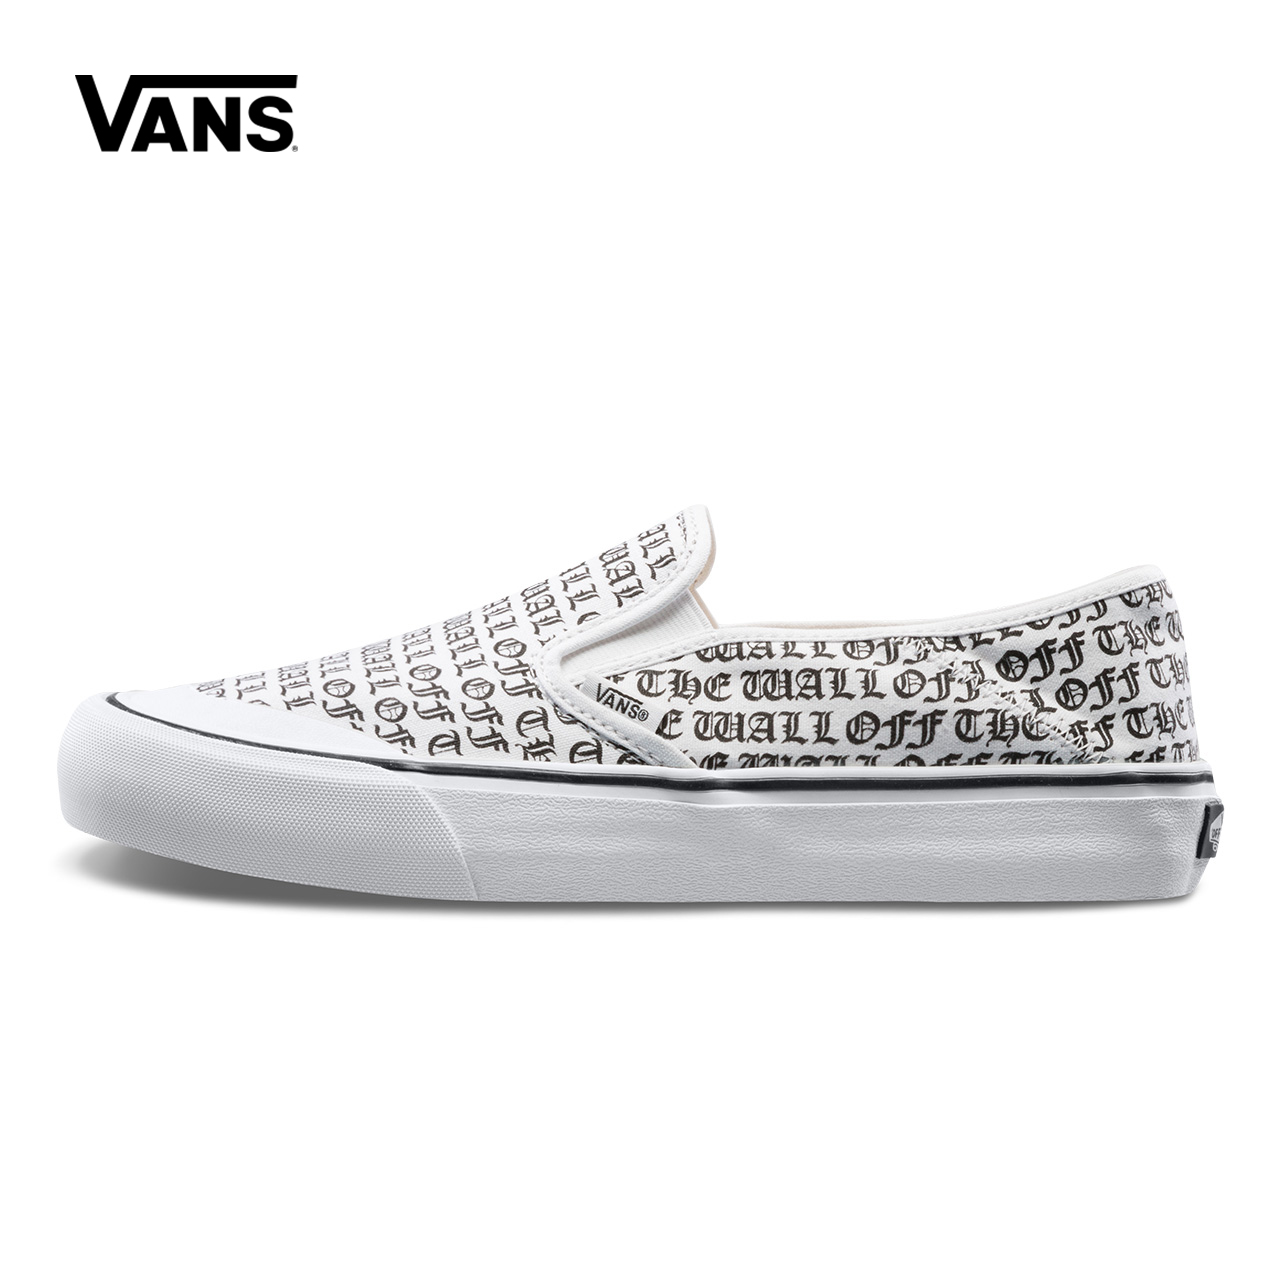 White Letter Printed Vans Sneakers Men Women Slip-On Low-top Skateboarding Shoes Sneakers Classic Canvas Shoes VN0A3MVDT1Z original vans shoes white color unisex women men low top skateboarding shoes sports shoes slip on list canvas sneakers